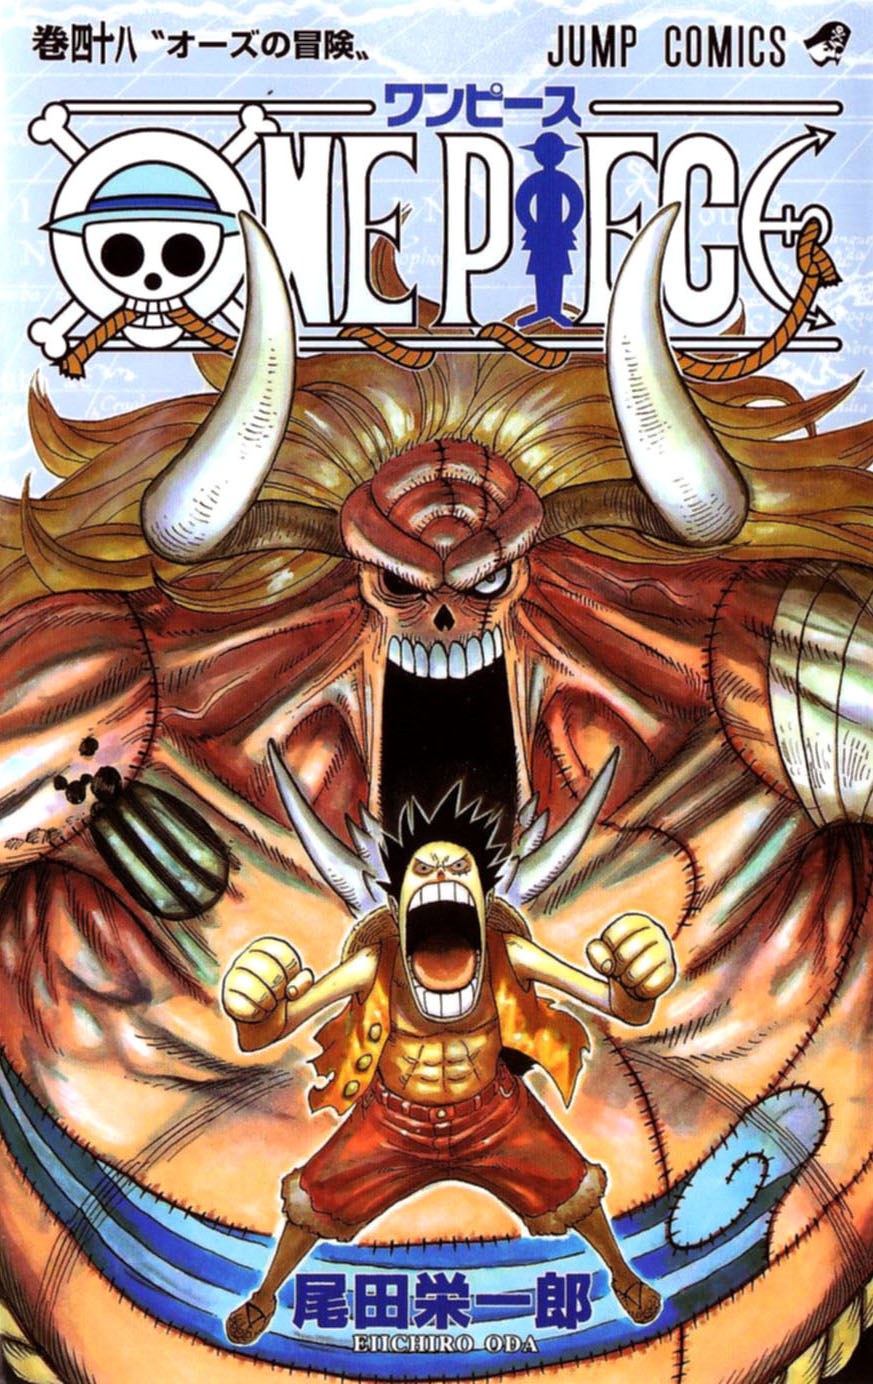 One Piece Vol. 48 Oars' Adventure (With images) One